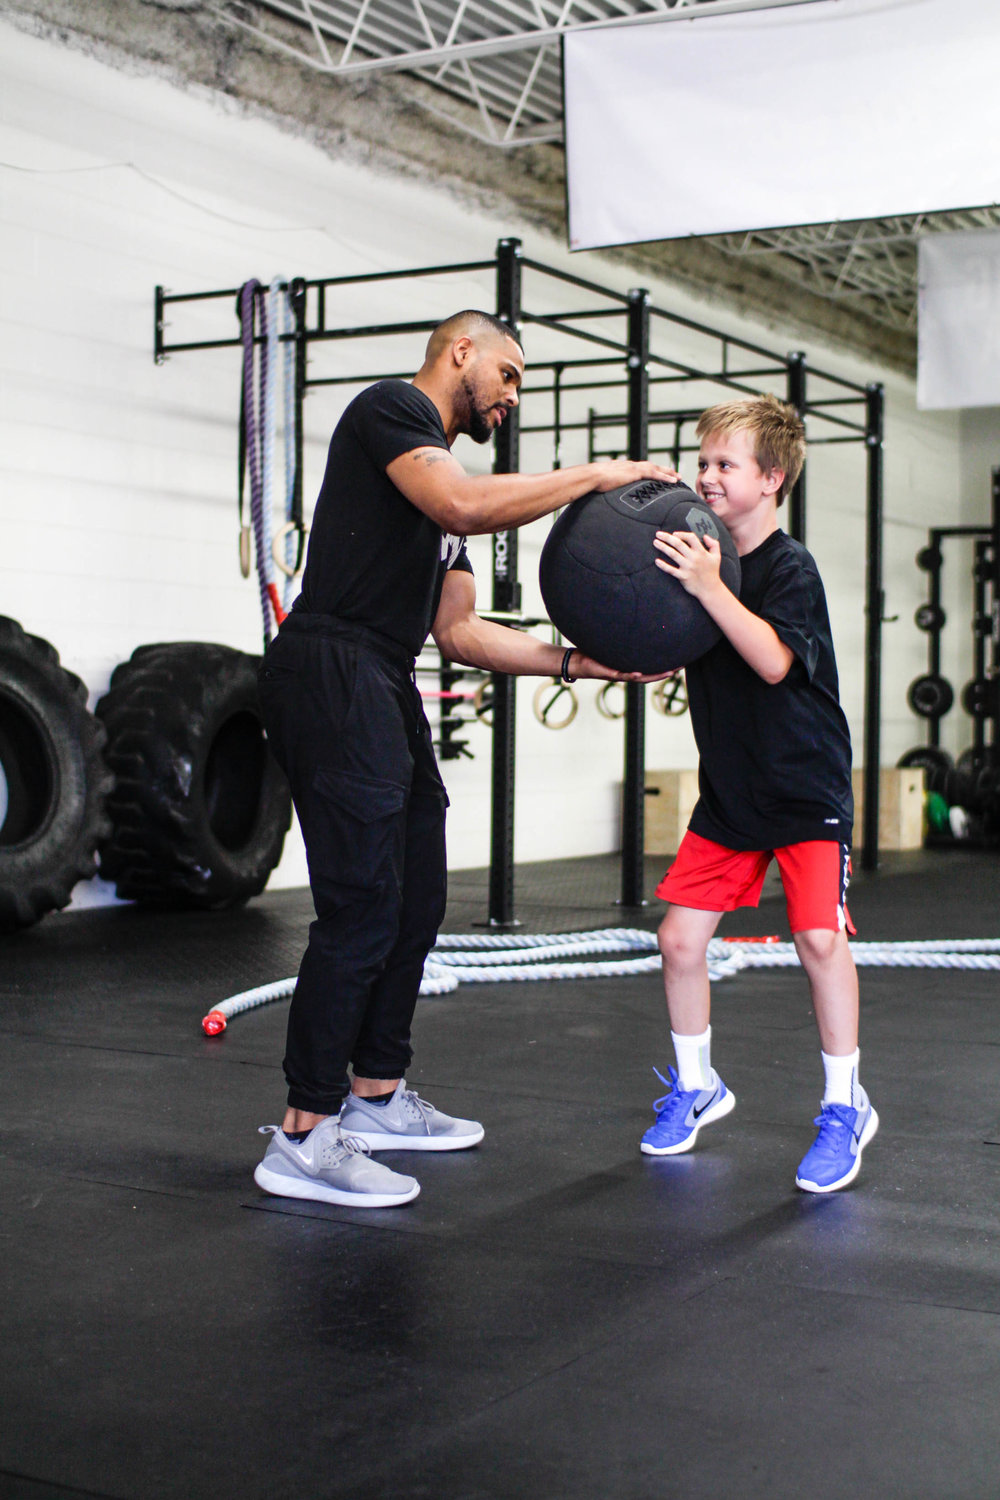 Personal training for children and young adults